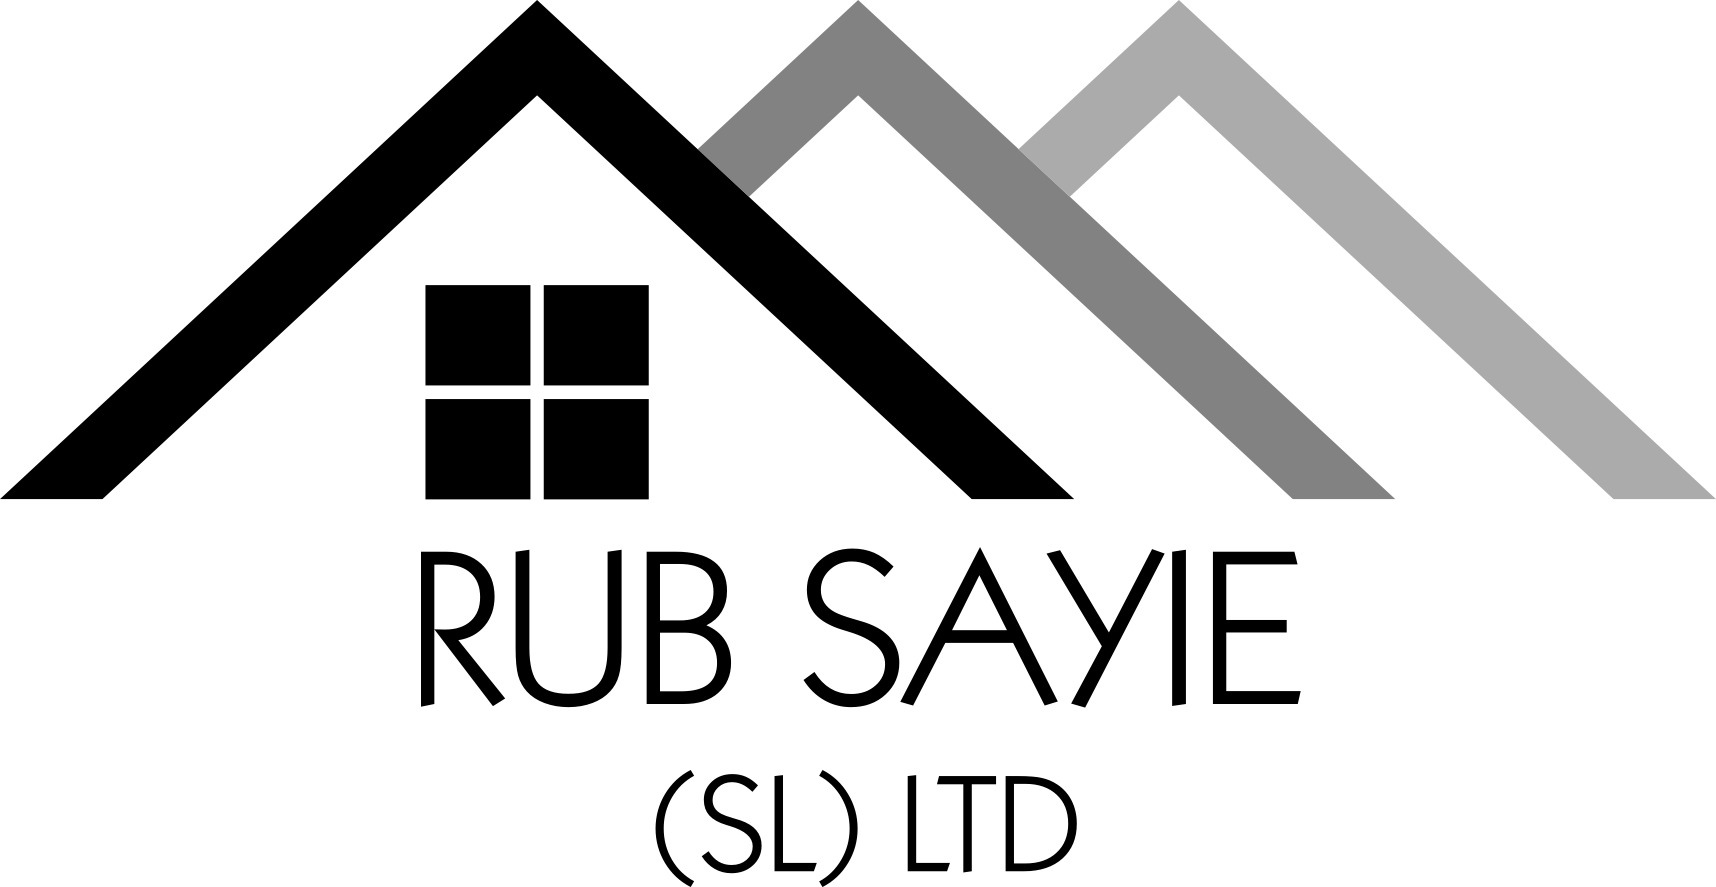 RUB SAYIE (SL) LIMITED